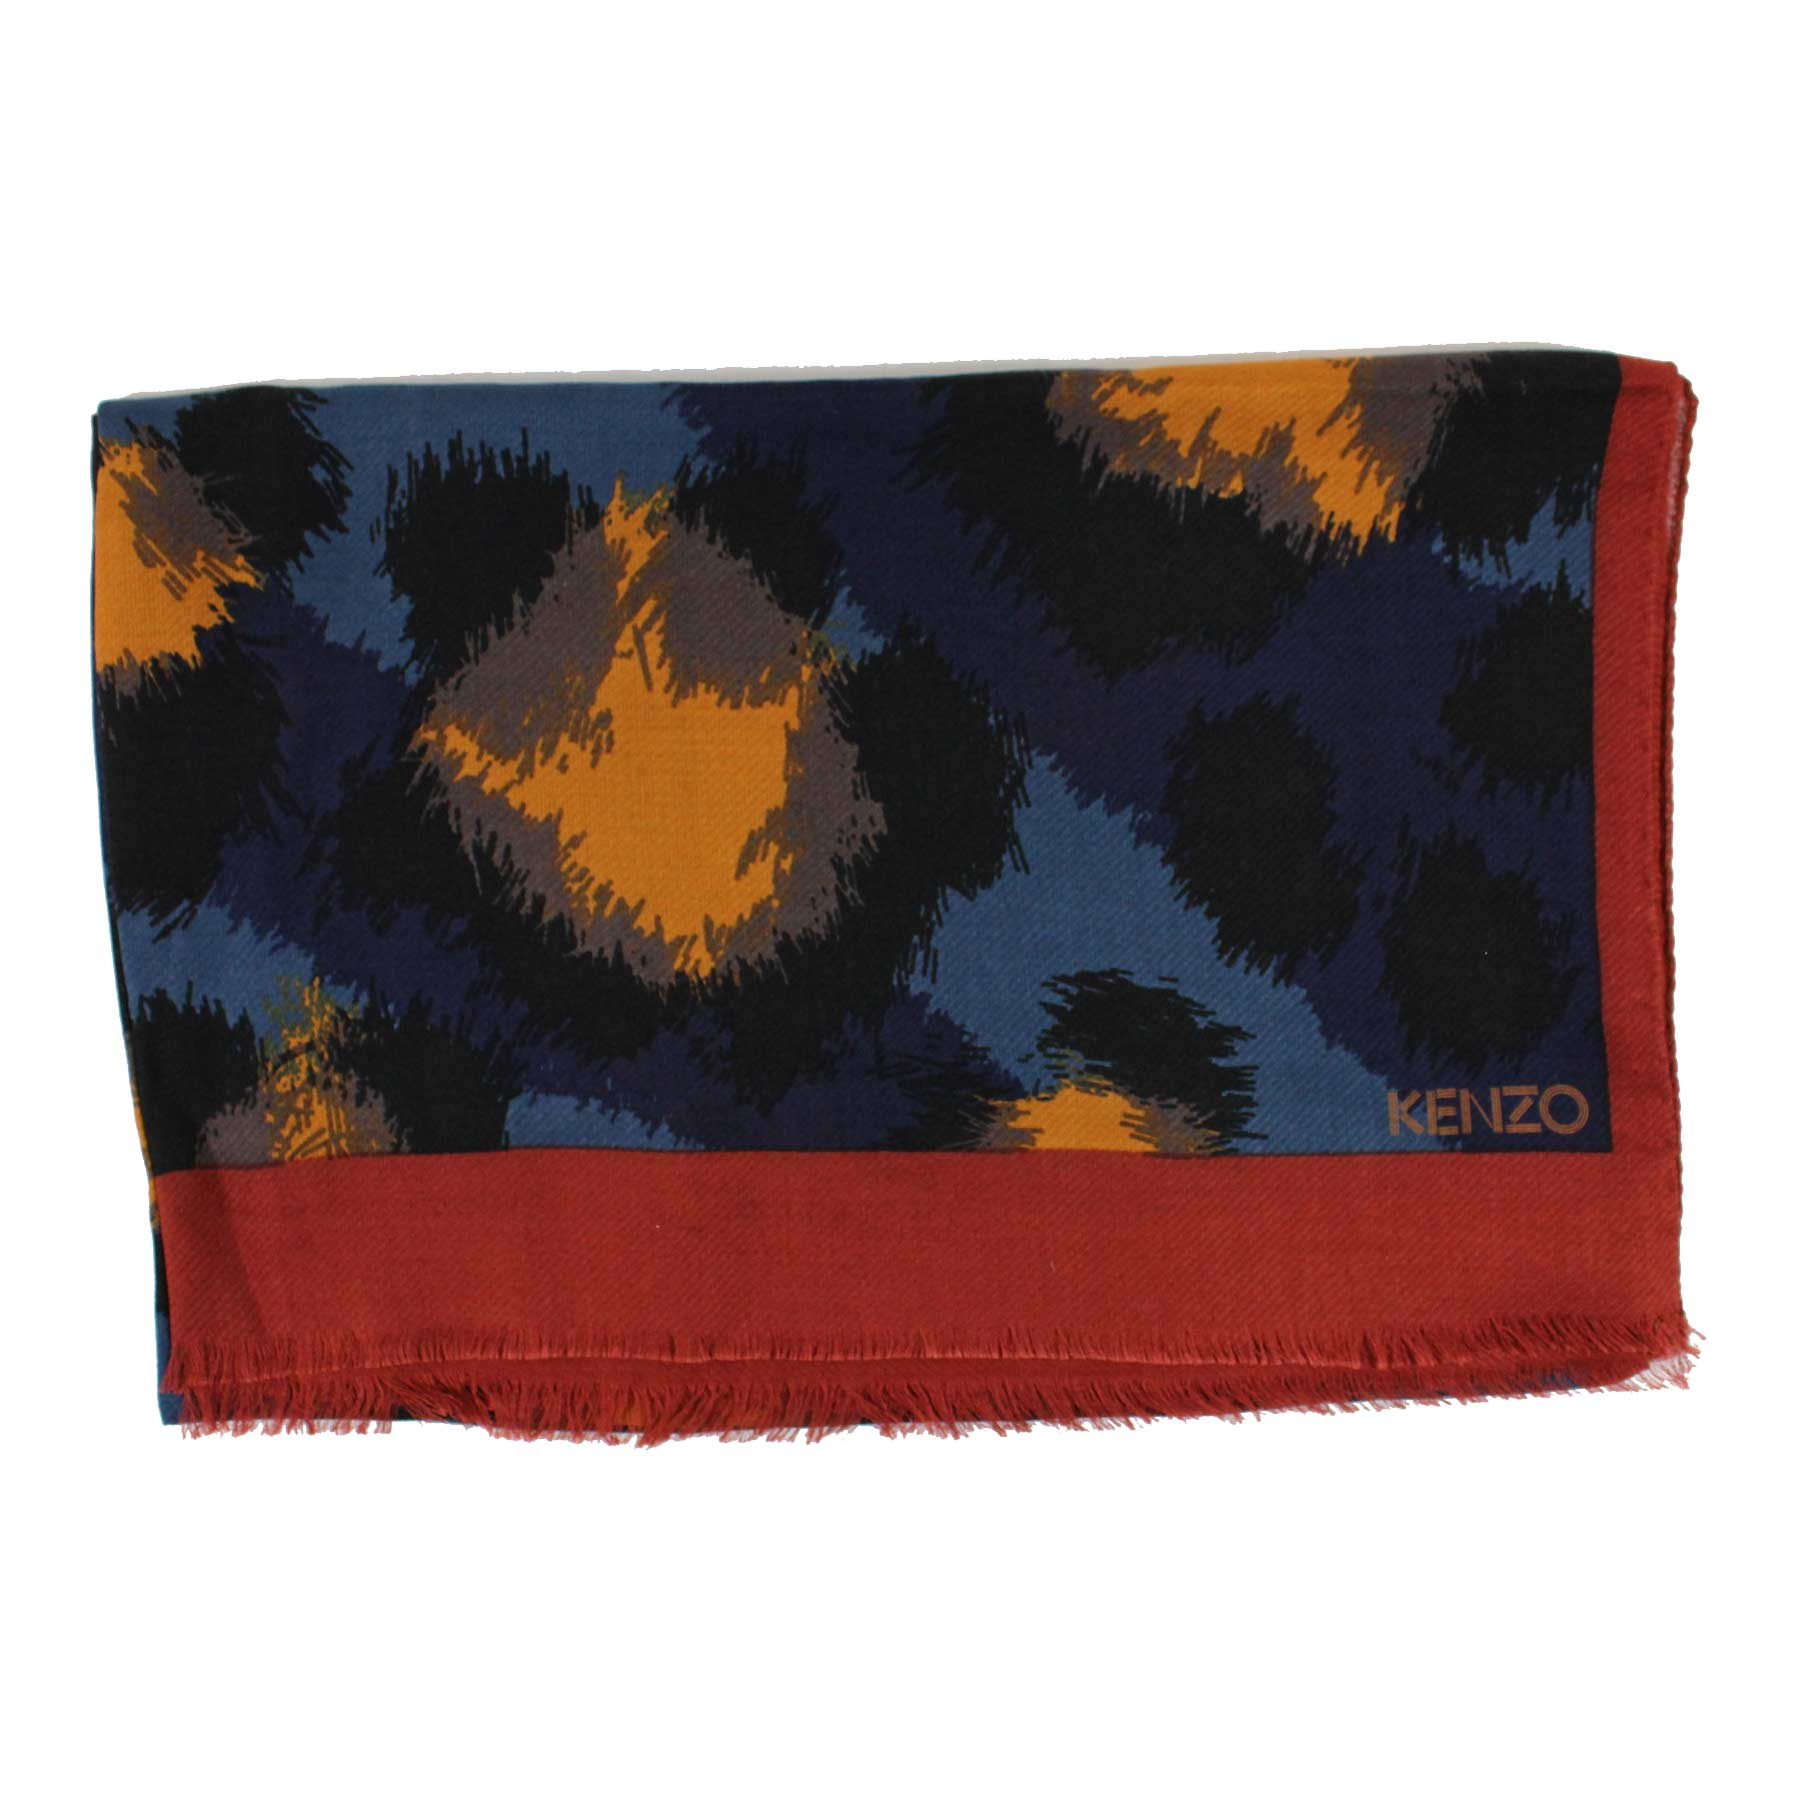 Kenzo Scarf Midnight Blue Brown Mustard Taupe Design